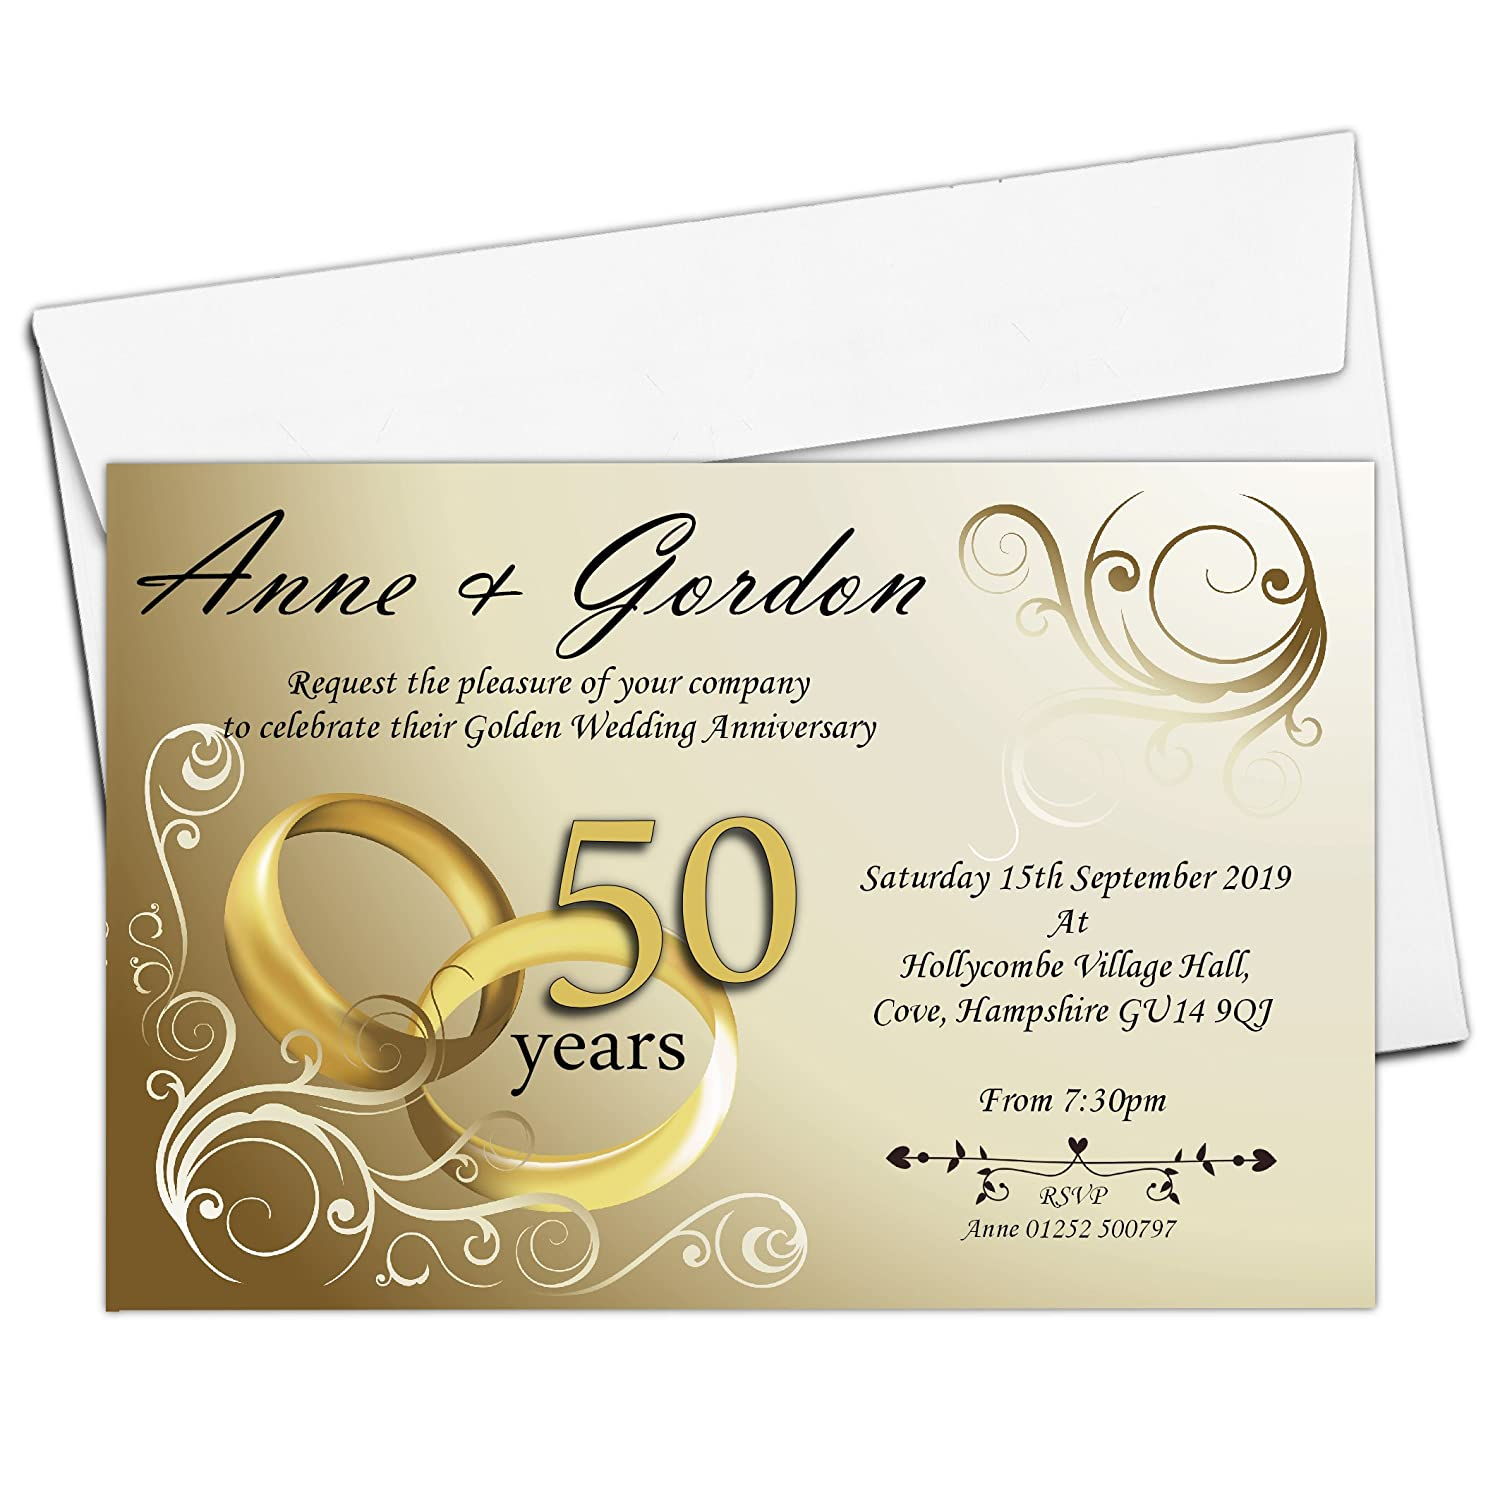 10 Personalised 50th Golden Wedding Anniversary Invitations with Envelopes N1 Invite Designs Ltd